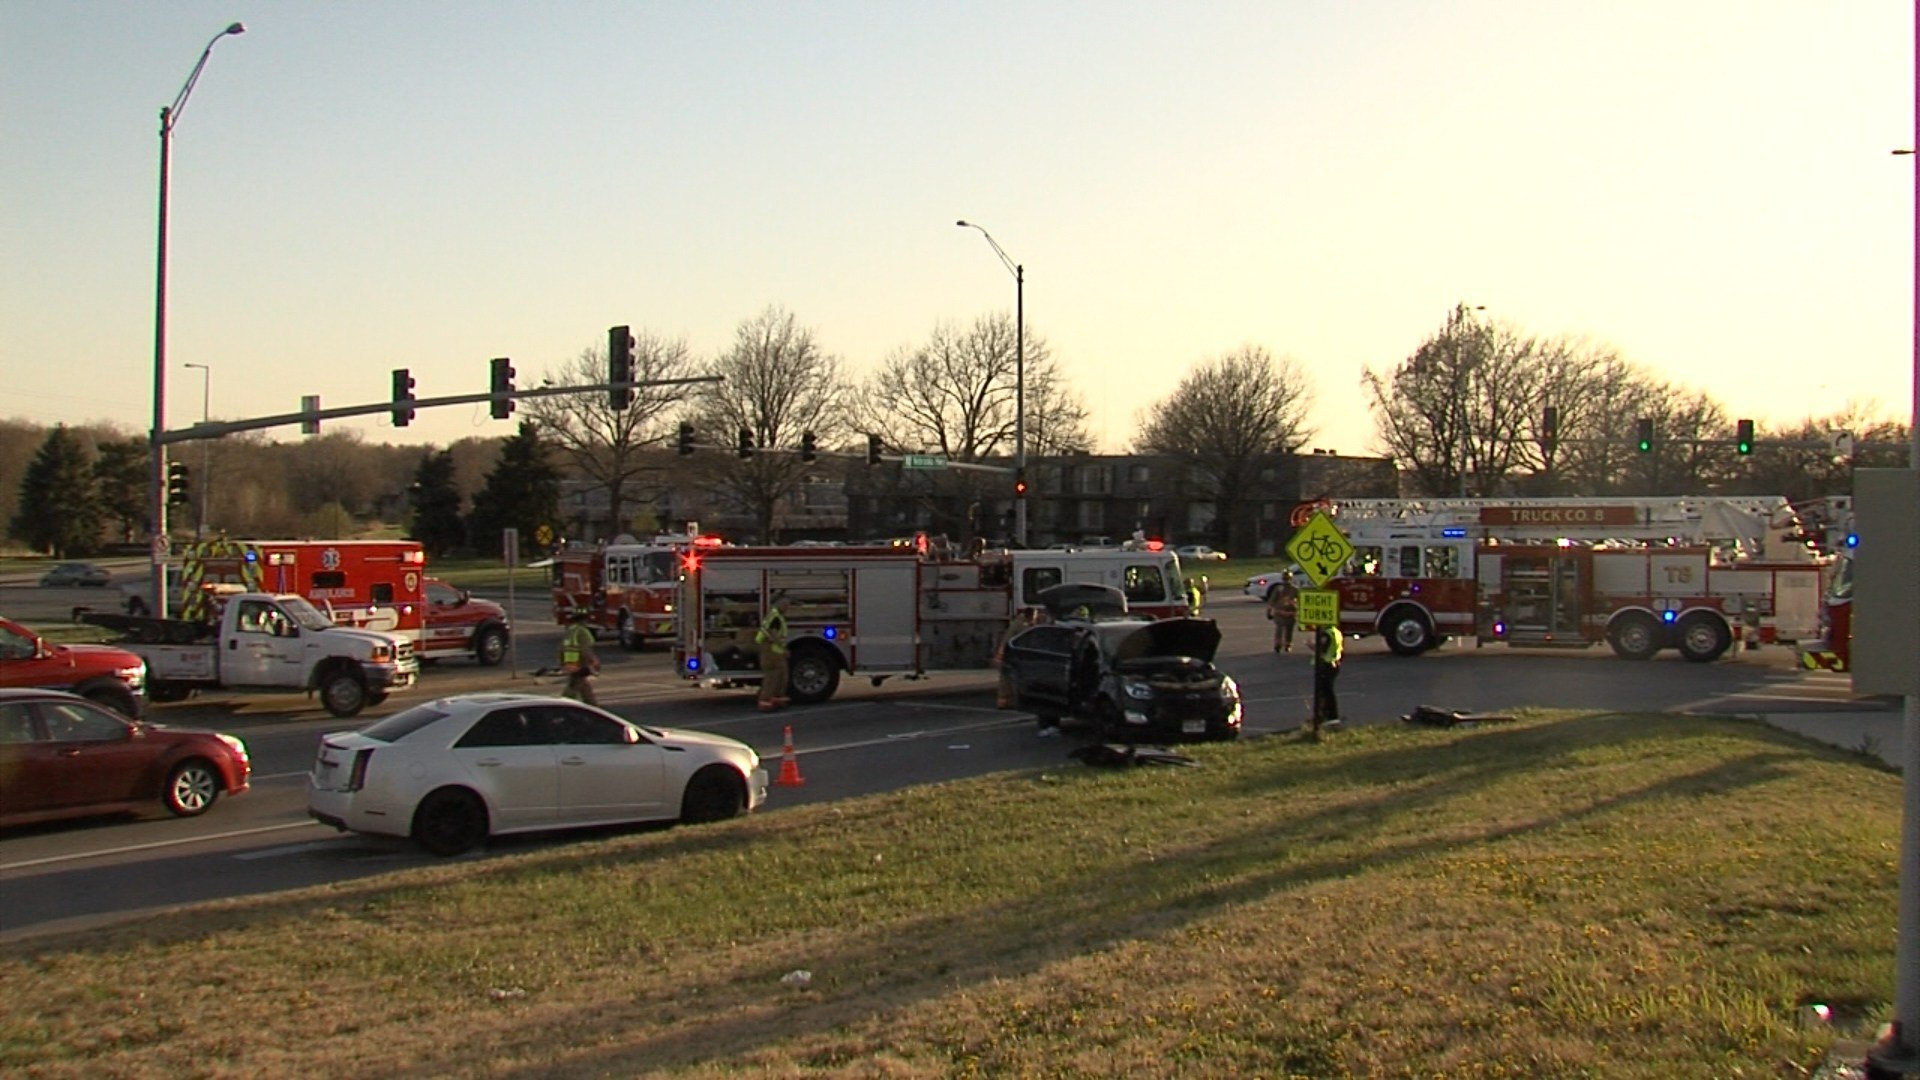 27th And Highway 2 Crash Klkn Tv News Weather And Sports For